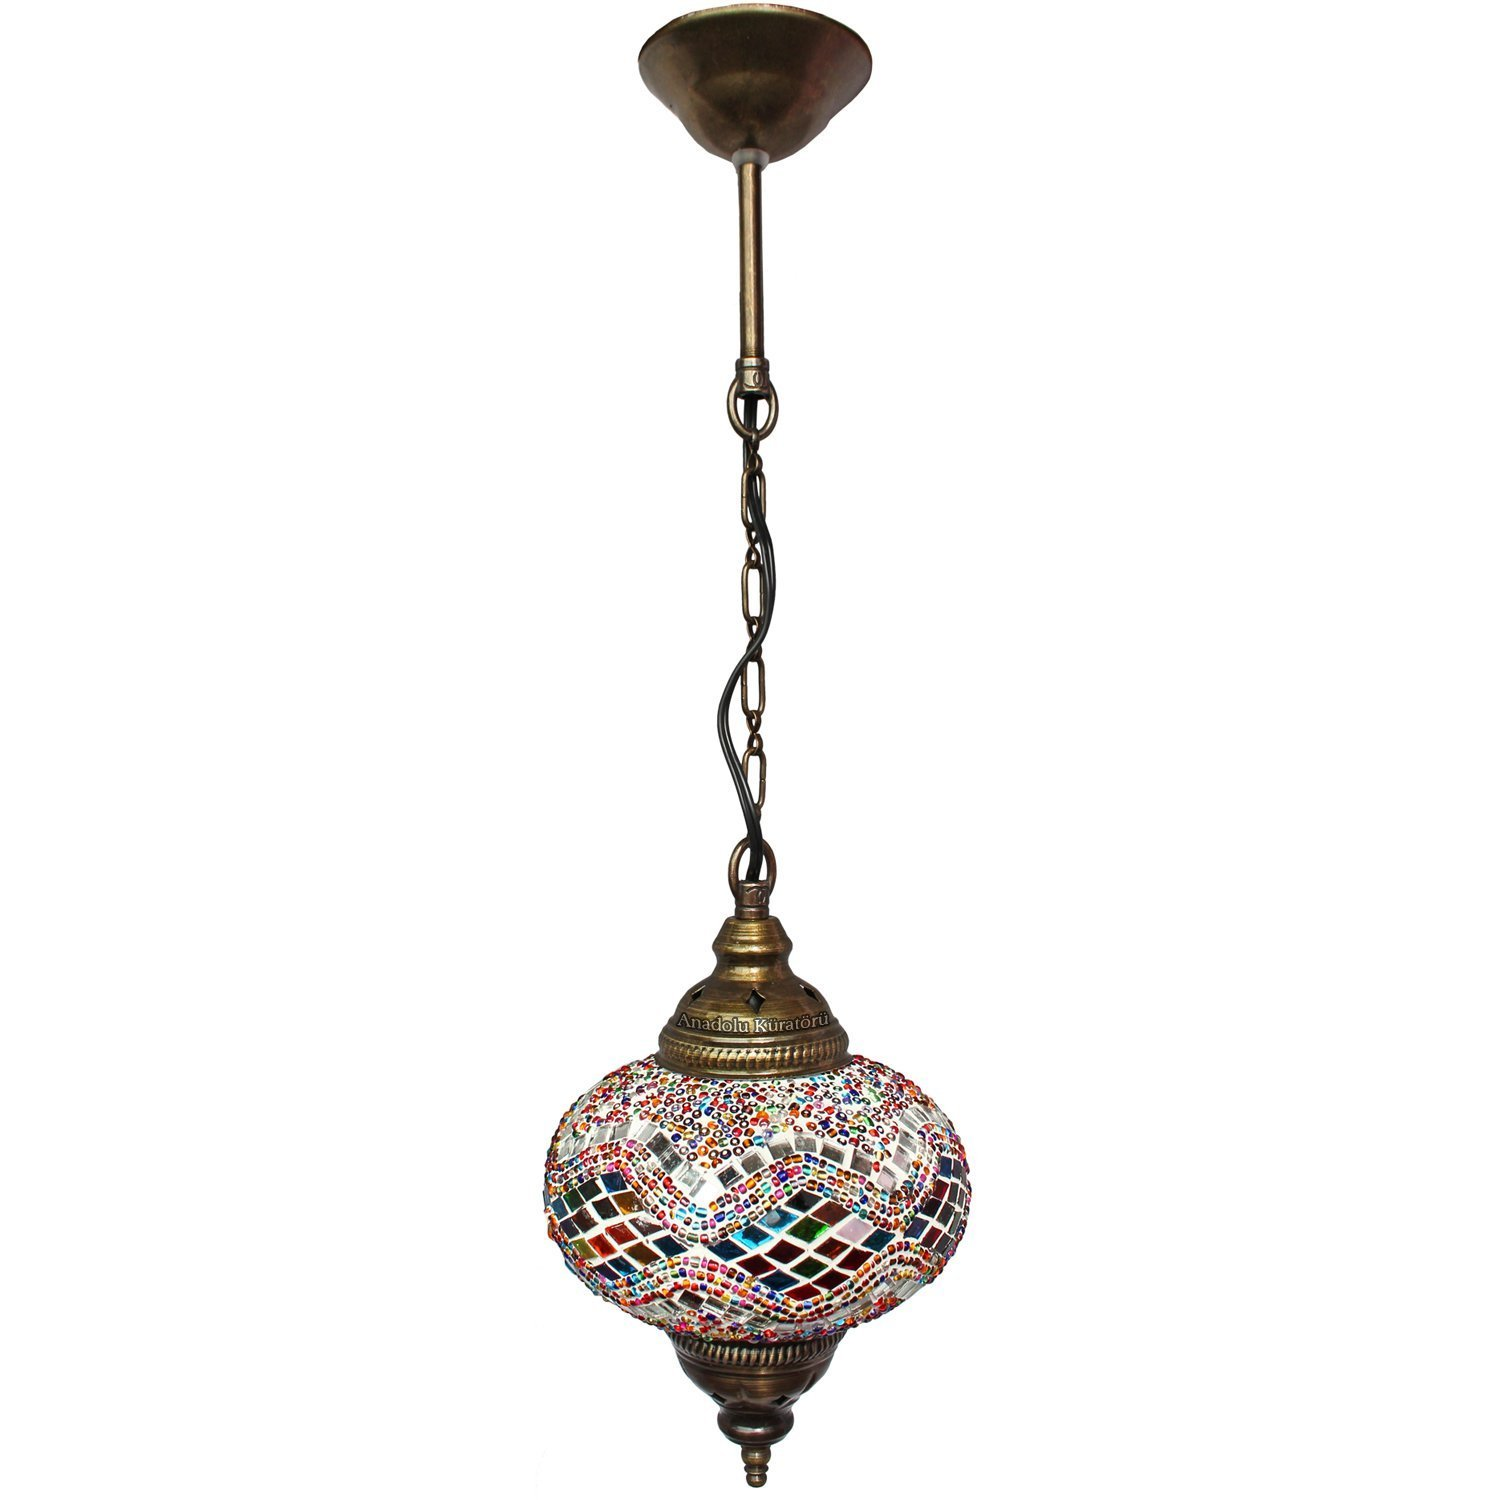 Ceiling Pendant Fixtures, Mosaic Lamps, Turkish Lamps, Hanging Lights, Moroccan Lanterns, Color Glass, Size 3, Multi-colored, Arabian Nights